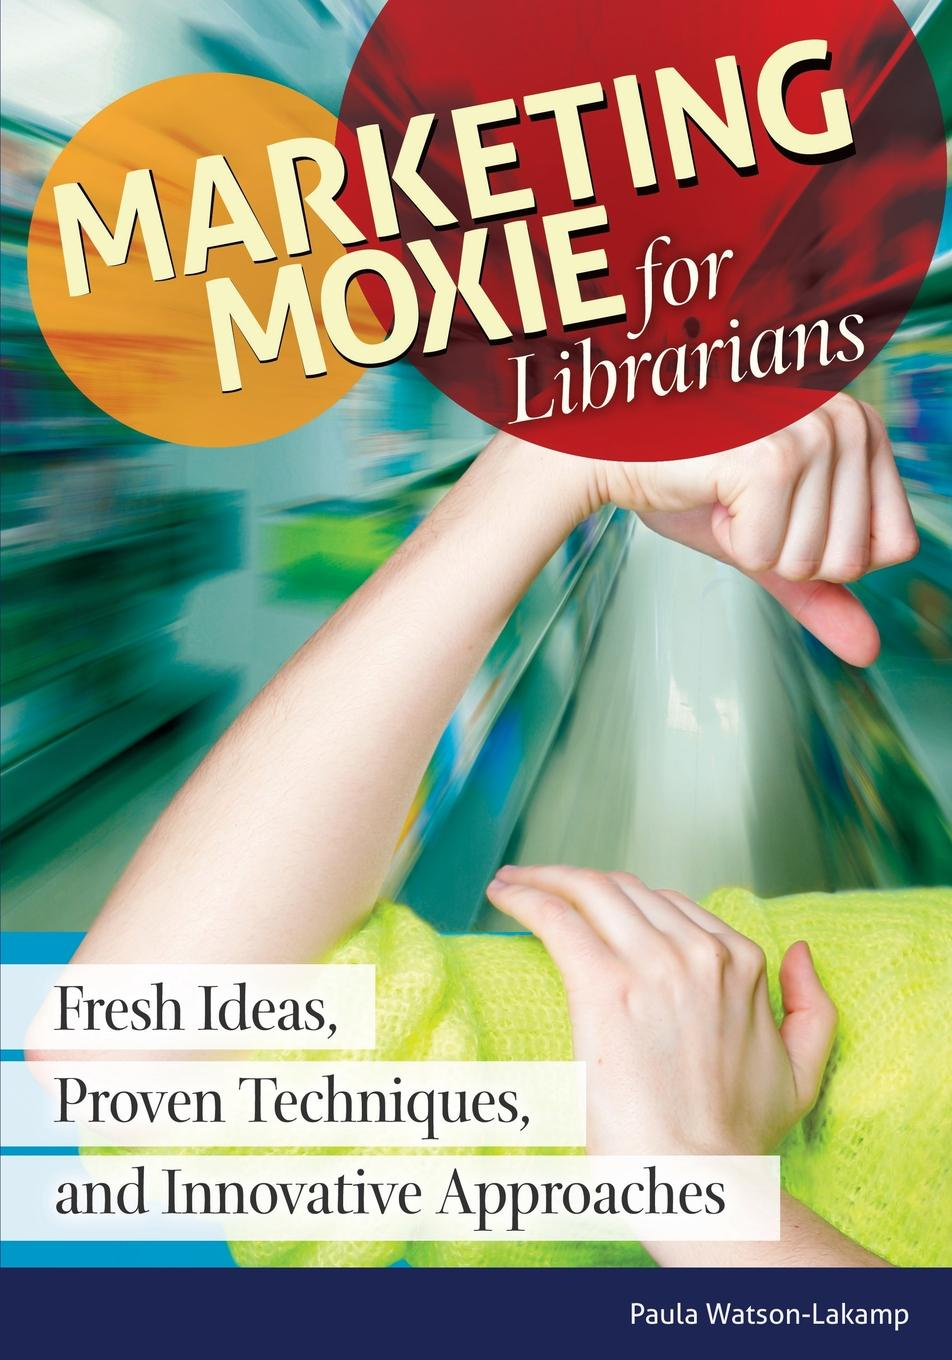 Sharona Hoffman Marketing Moxie for Librarians. Fresh Ideas, Proven Techniques, and Innovative Approaches